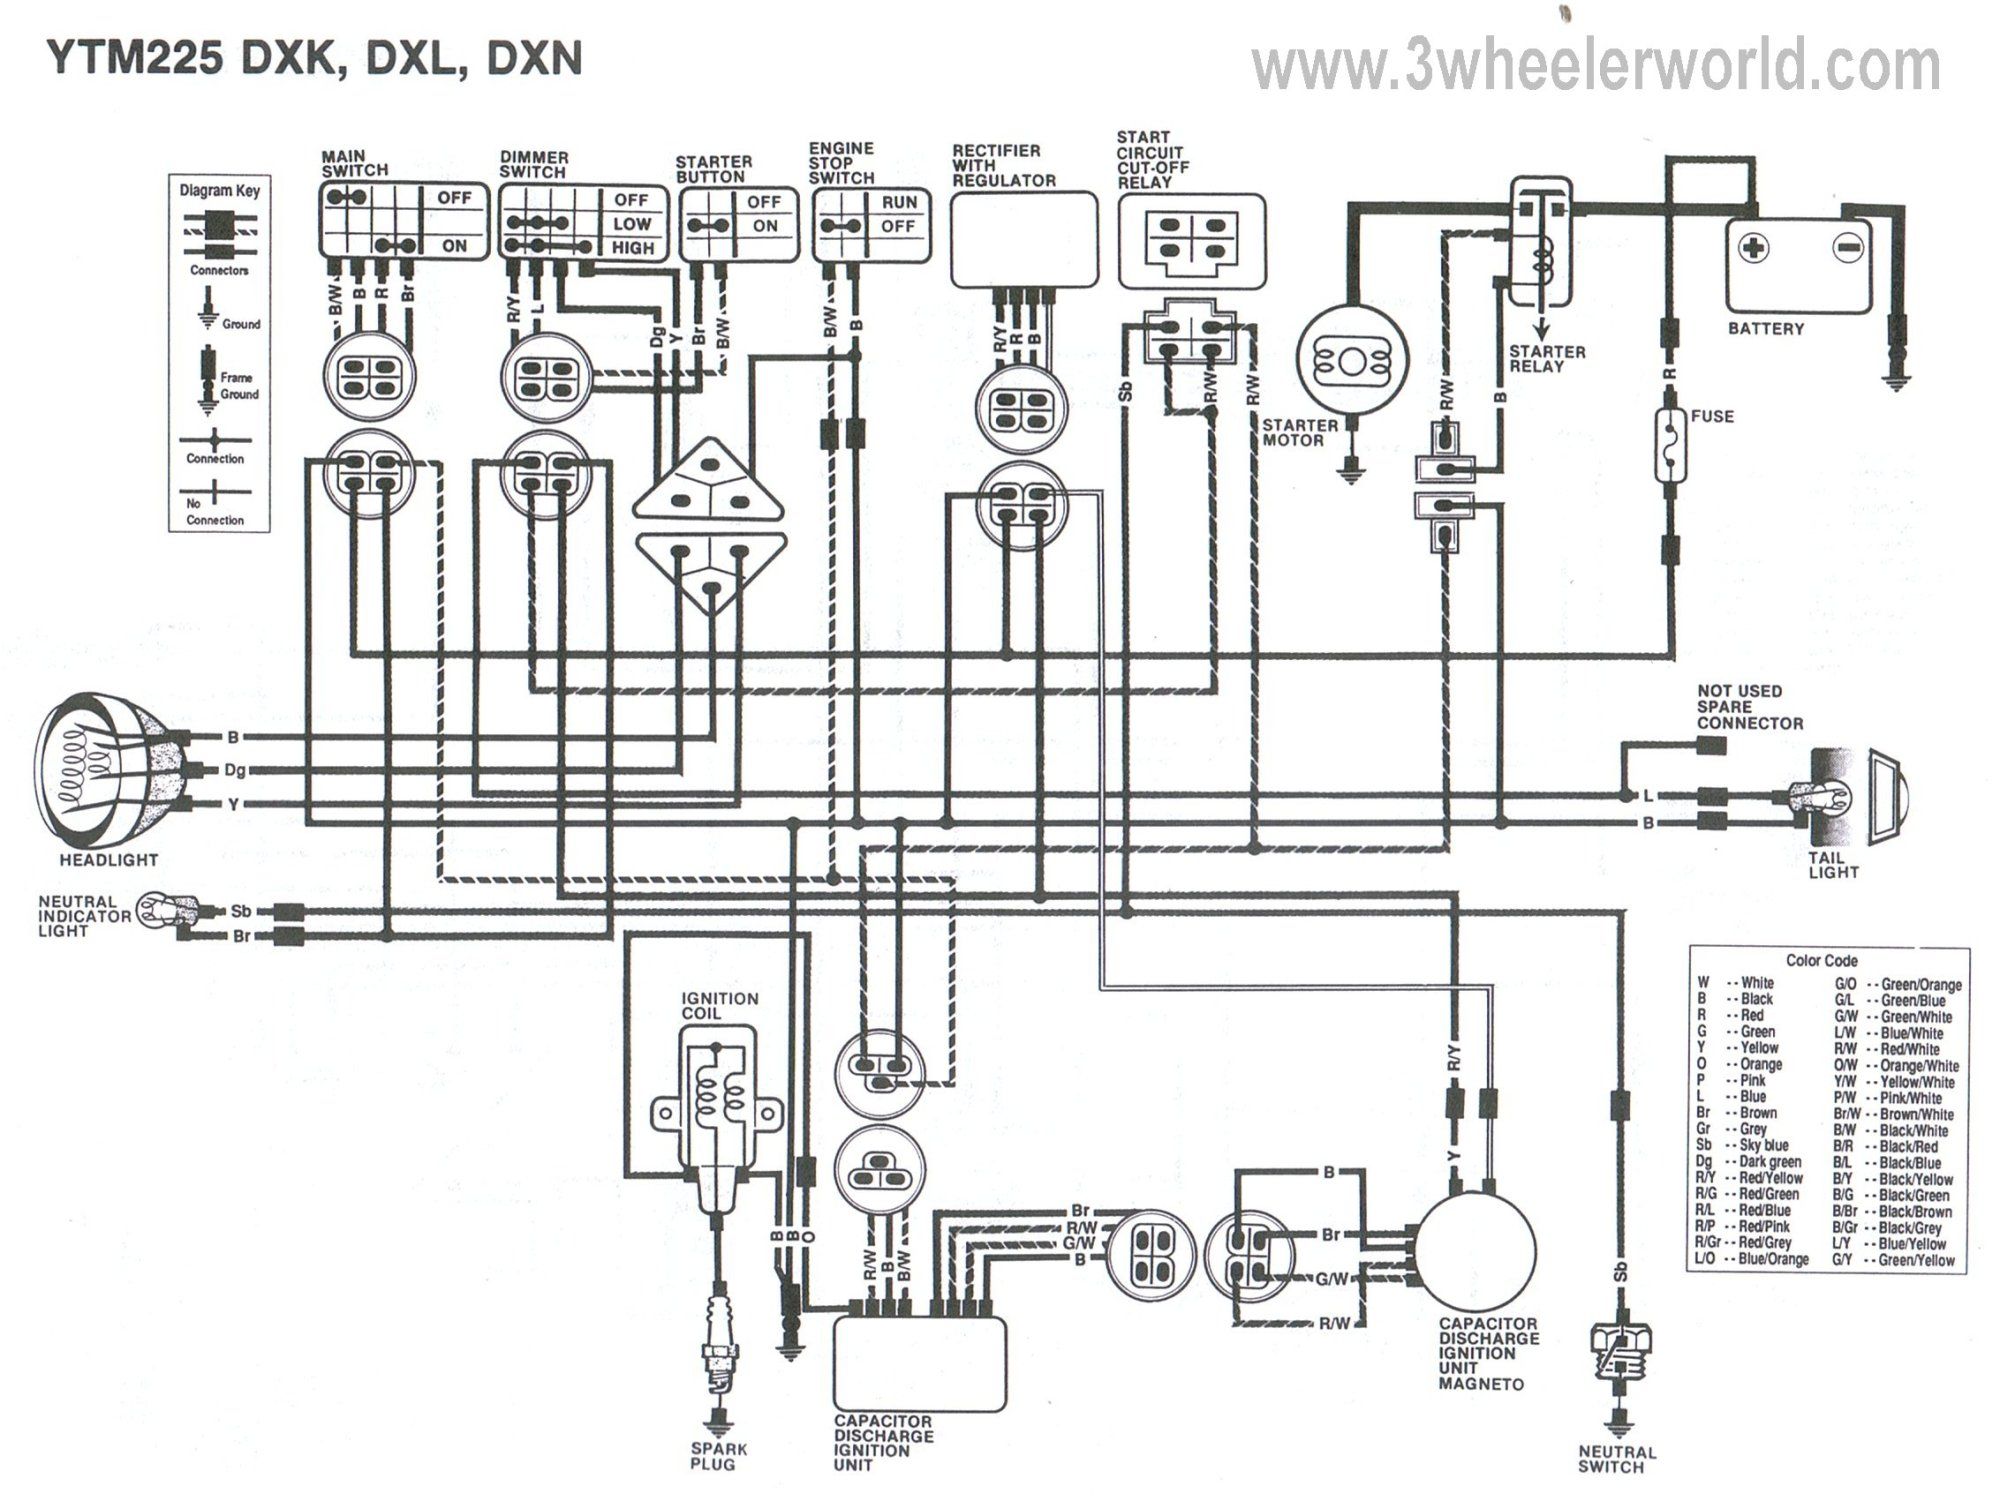 hight resolution of yamaha wire diagram blog wiring diagram yamaha wiring diagram g9e electric golf cart yamaha wiring diagram